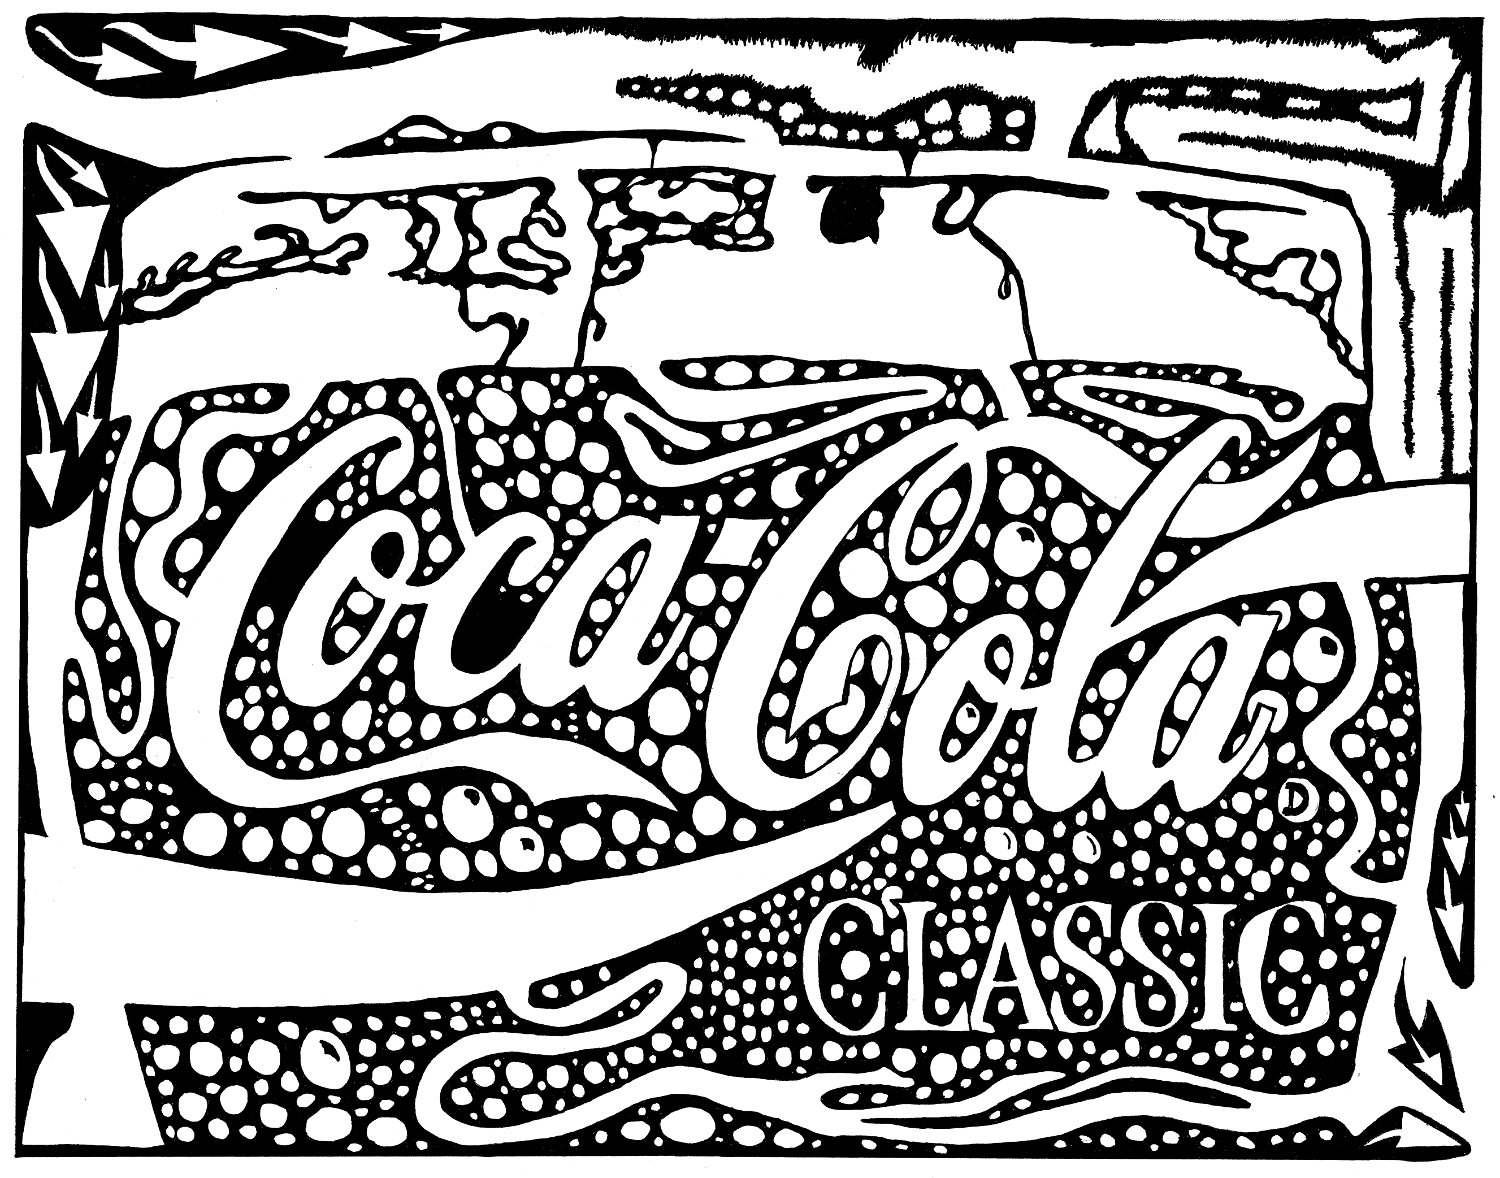 Psychedelic maze of a Coca Cola glass with bubbles and coke in it by Yonatan Frimer.